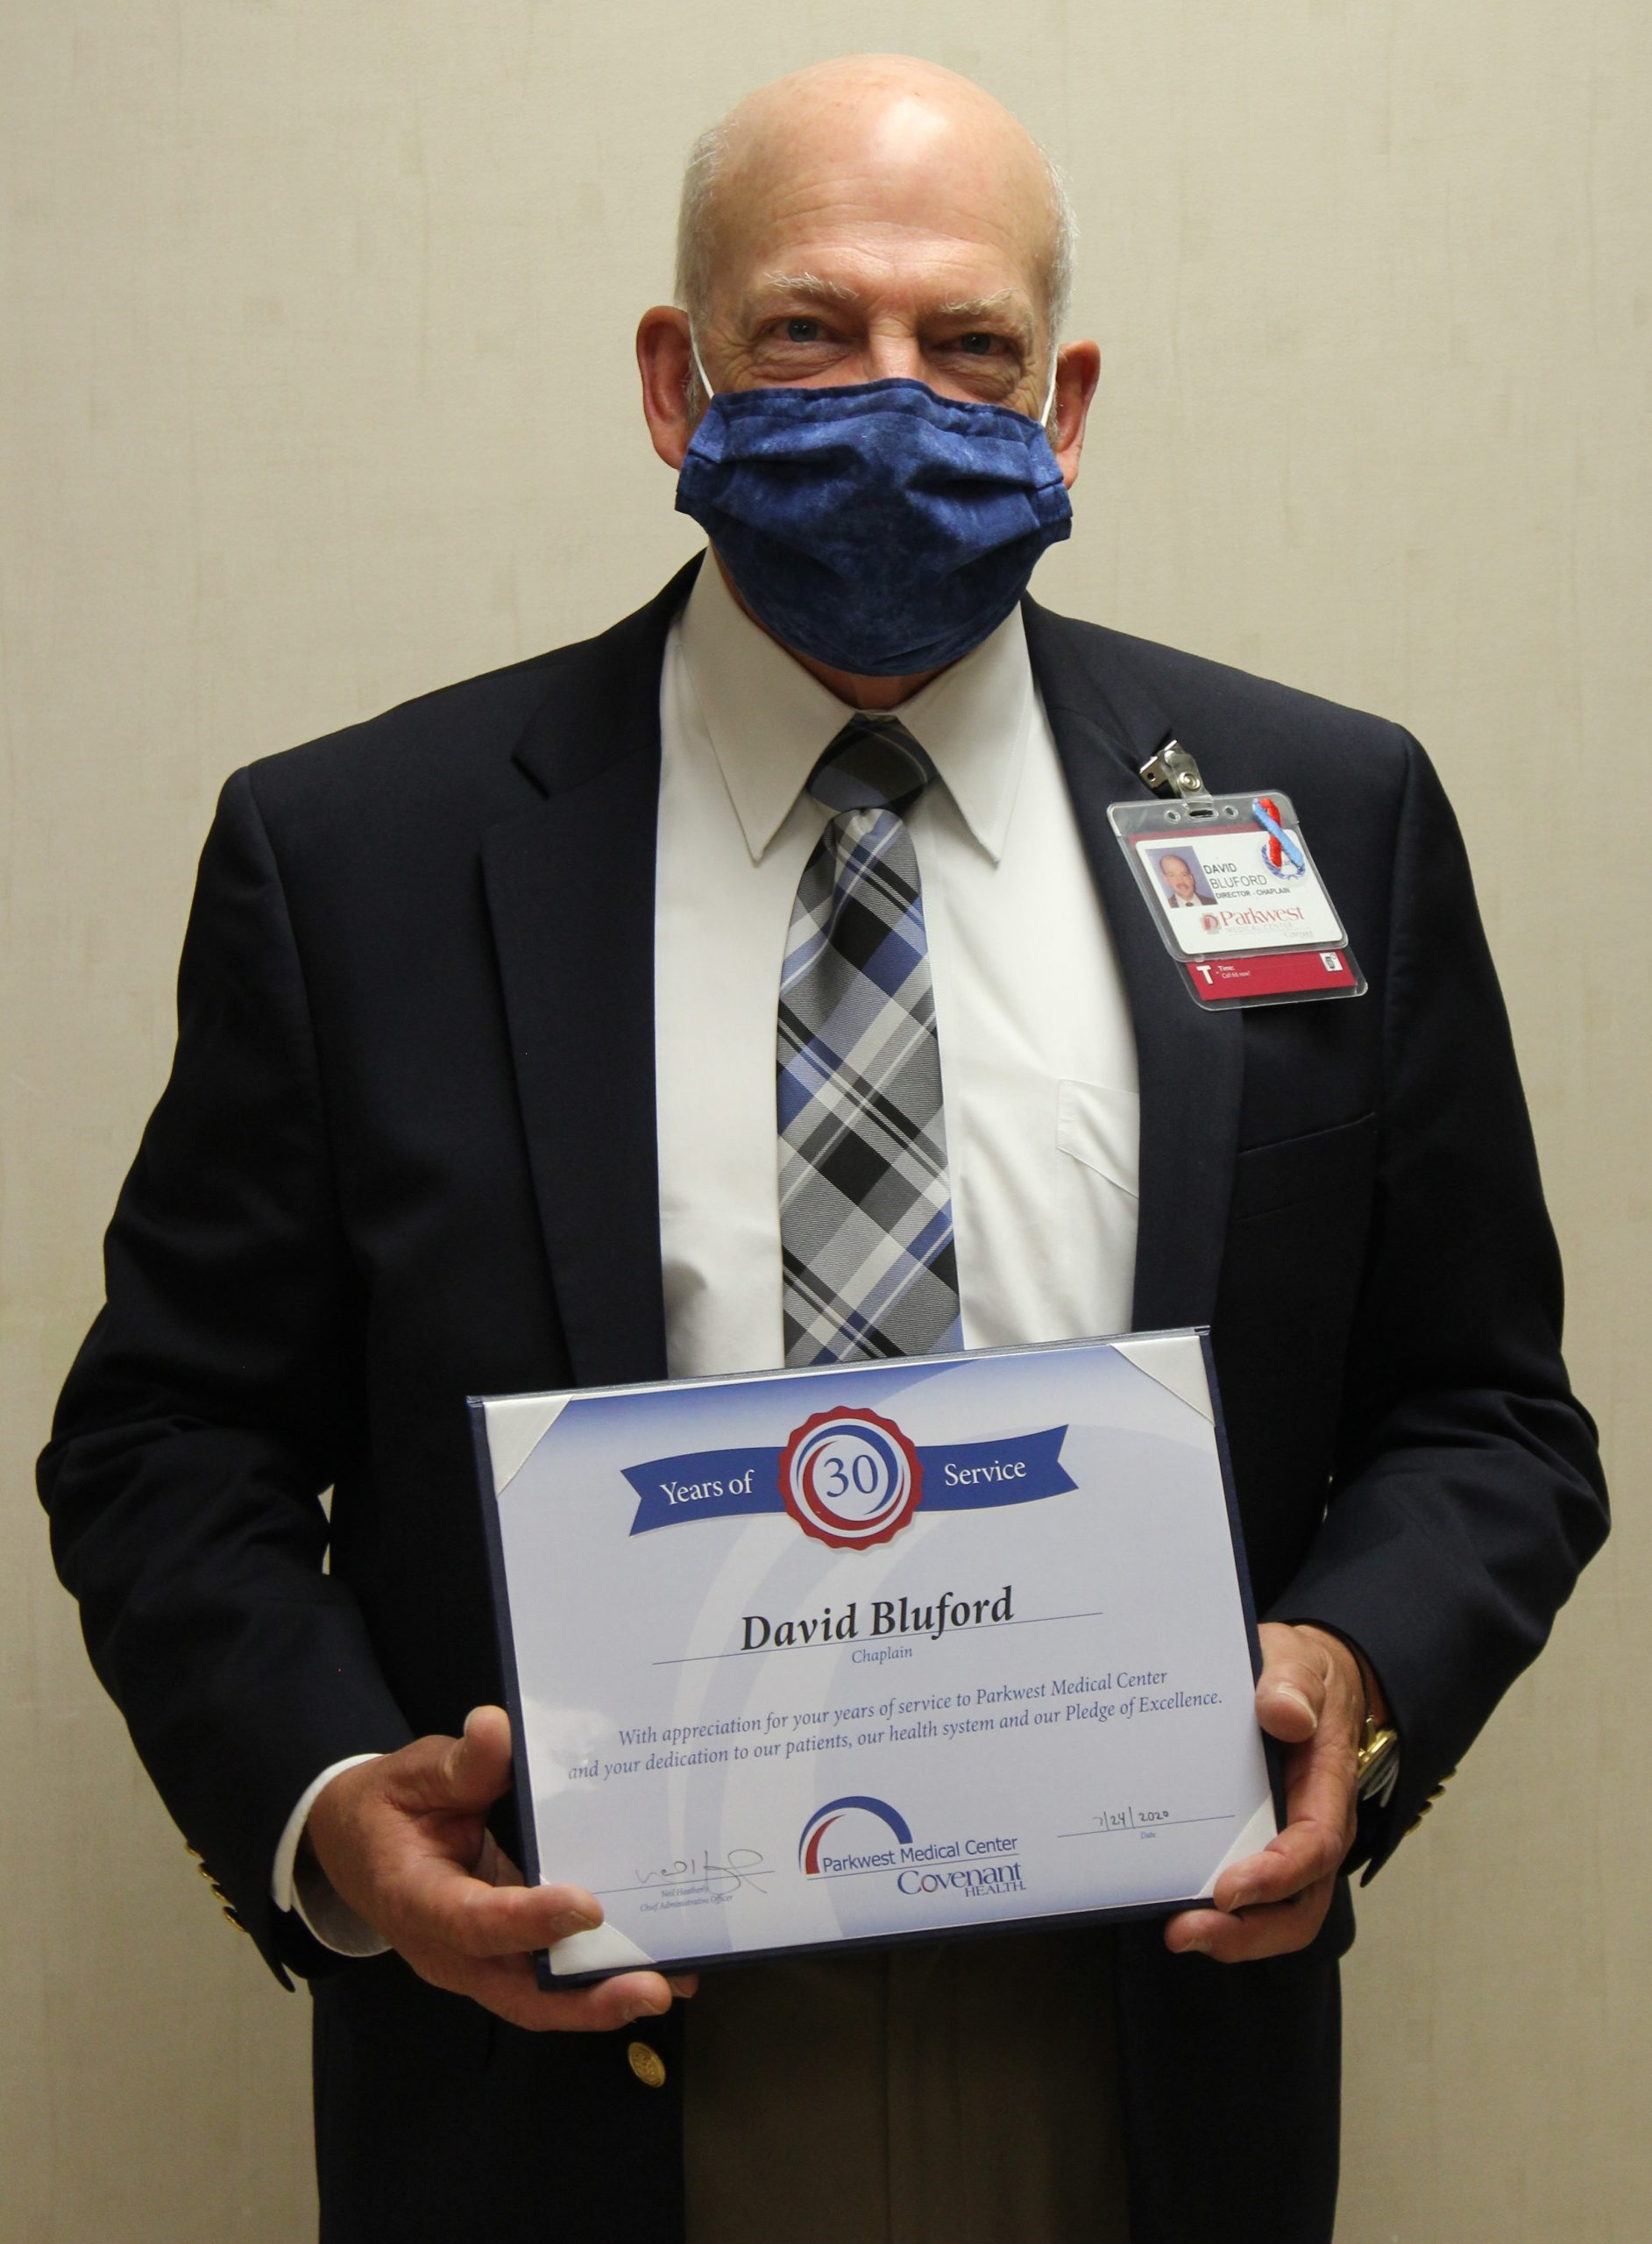 David Bluford in mask, holding certificate.